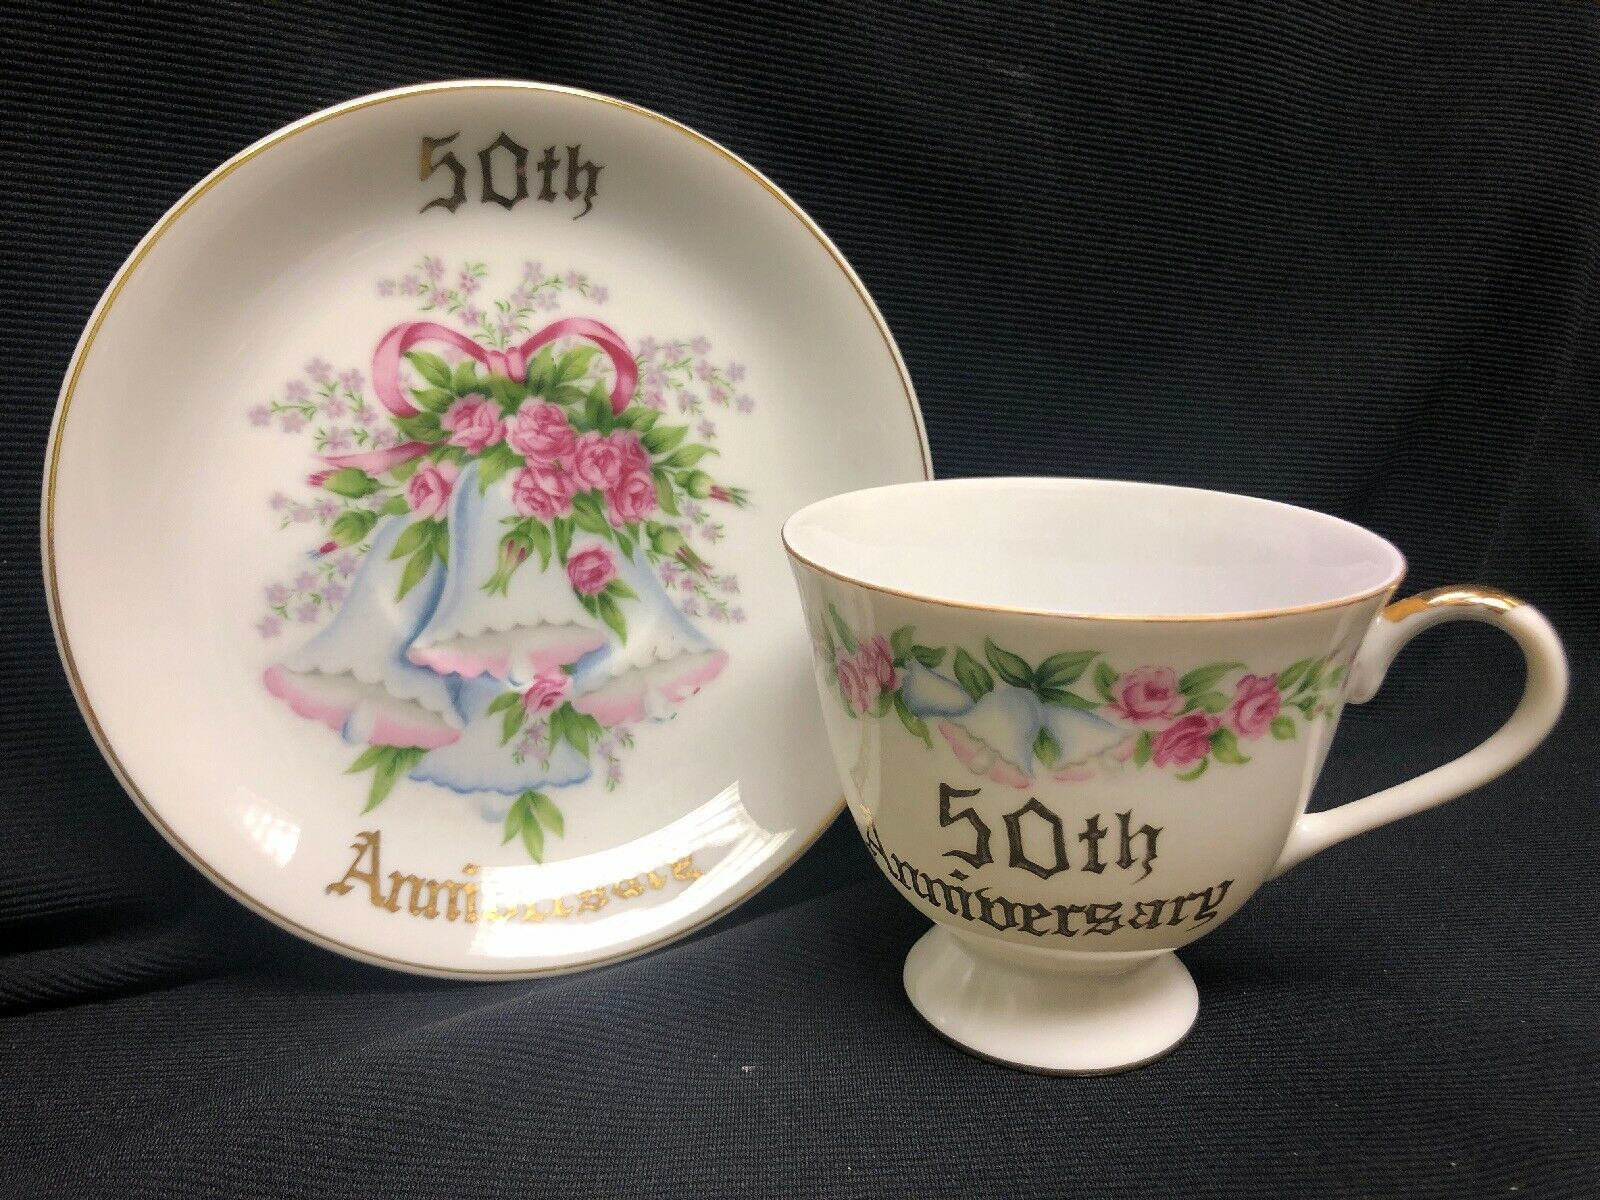 50th Anniversary Norcrest Fine China Tea Cup & Saucer    $19.99